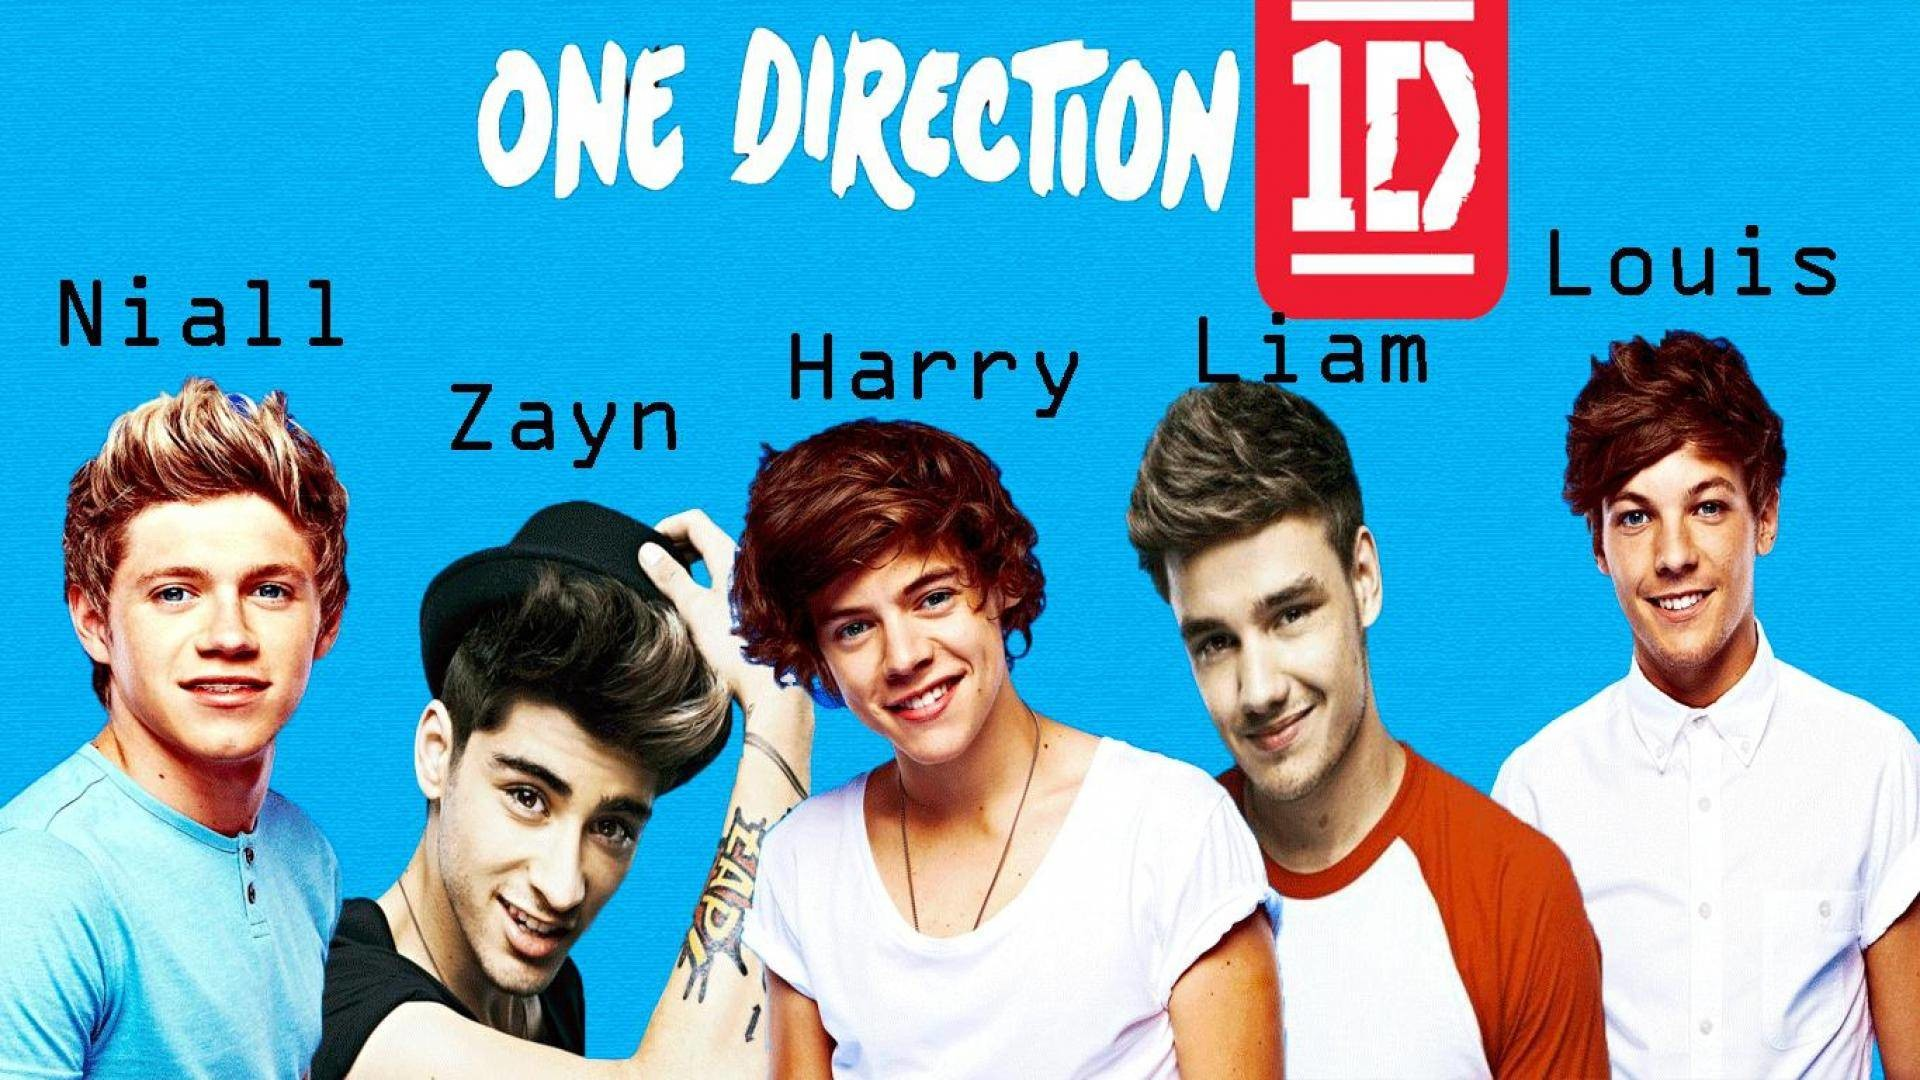 1920x1200 free screensaver wallpapers for one direction - one direction category